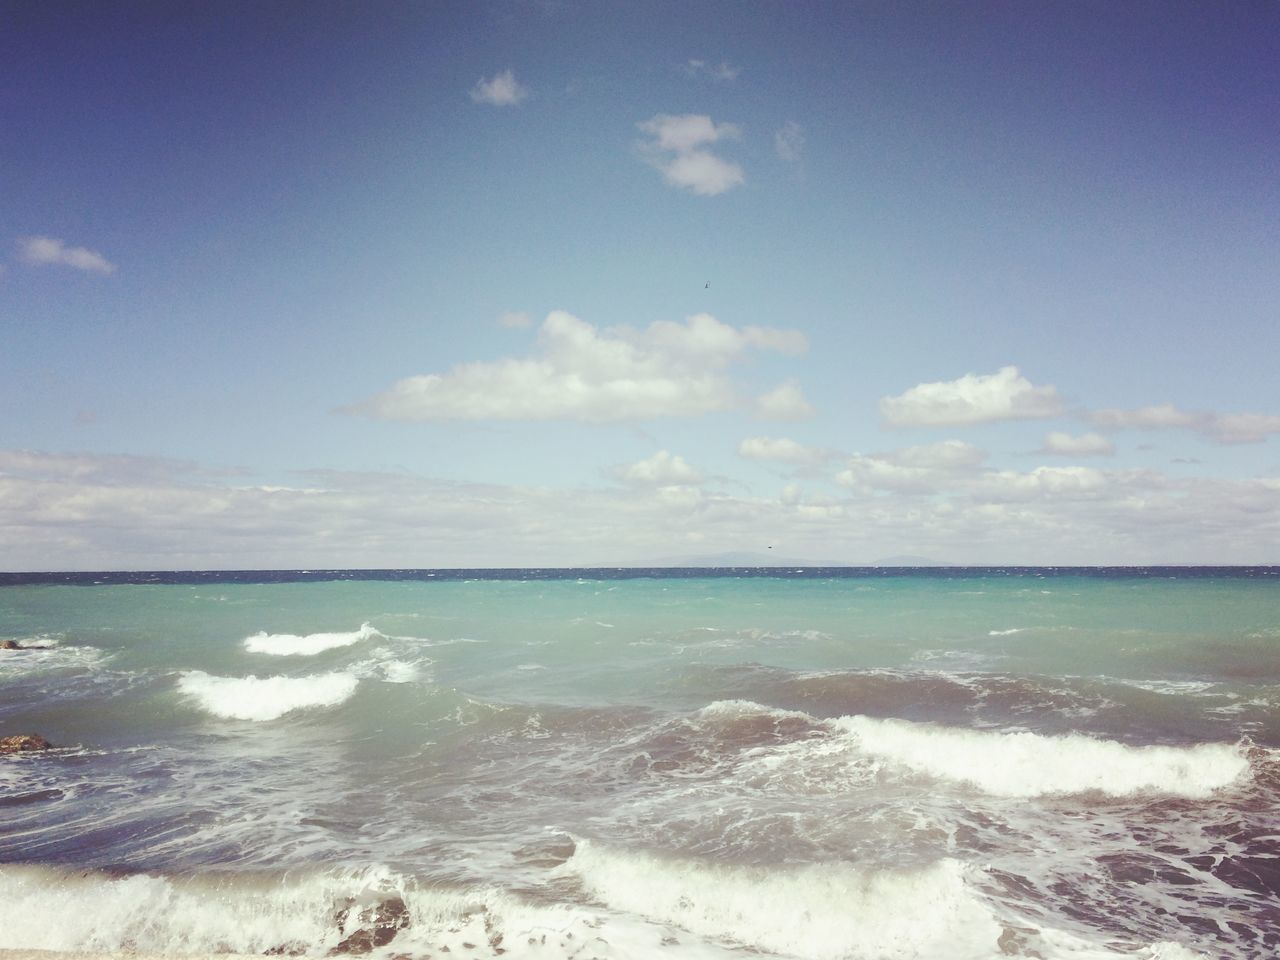 sea, horizon over water, beauty in nature, scenics, water, nature, sky, tranquility, no people, tranquil scene, cloud - sky, beach, outdoors, day, wave, blue